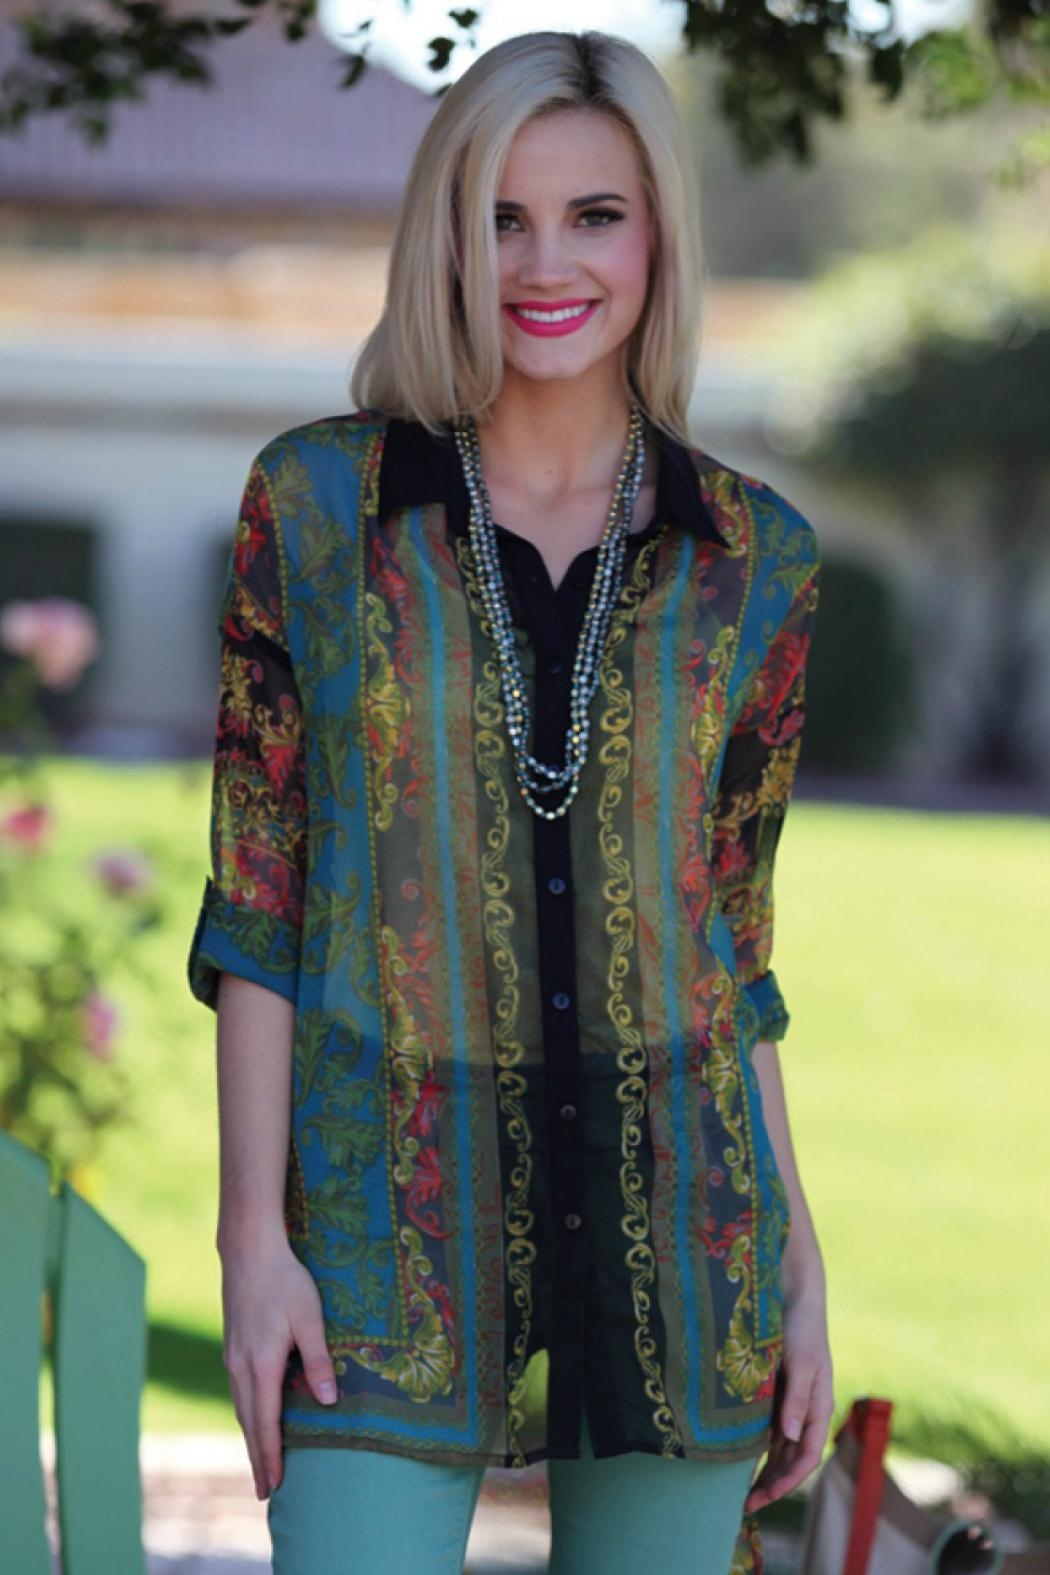 Angie Clothes Sheer Vintage Print Tunic Top - Main Image